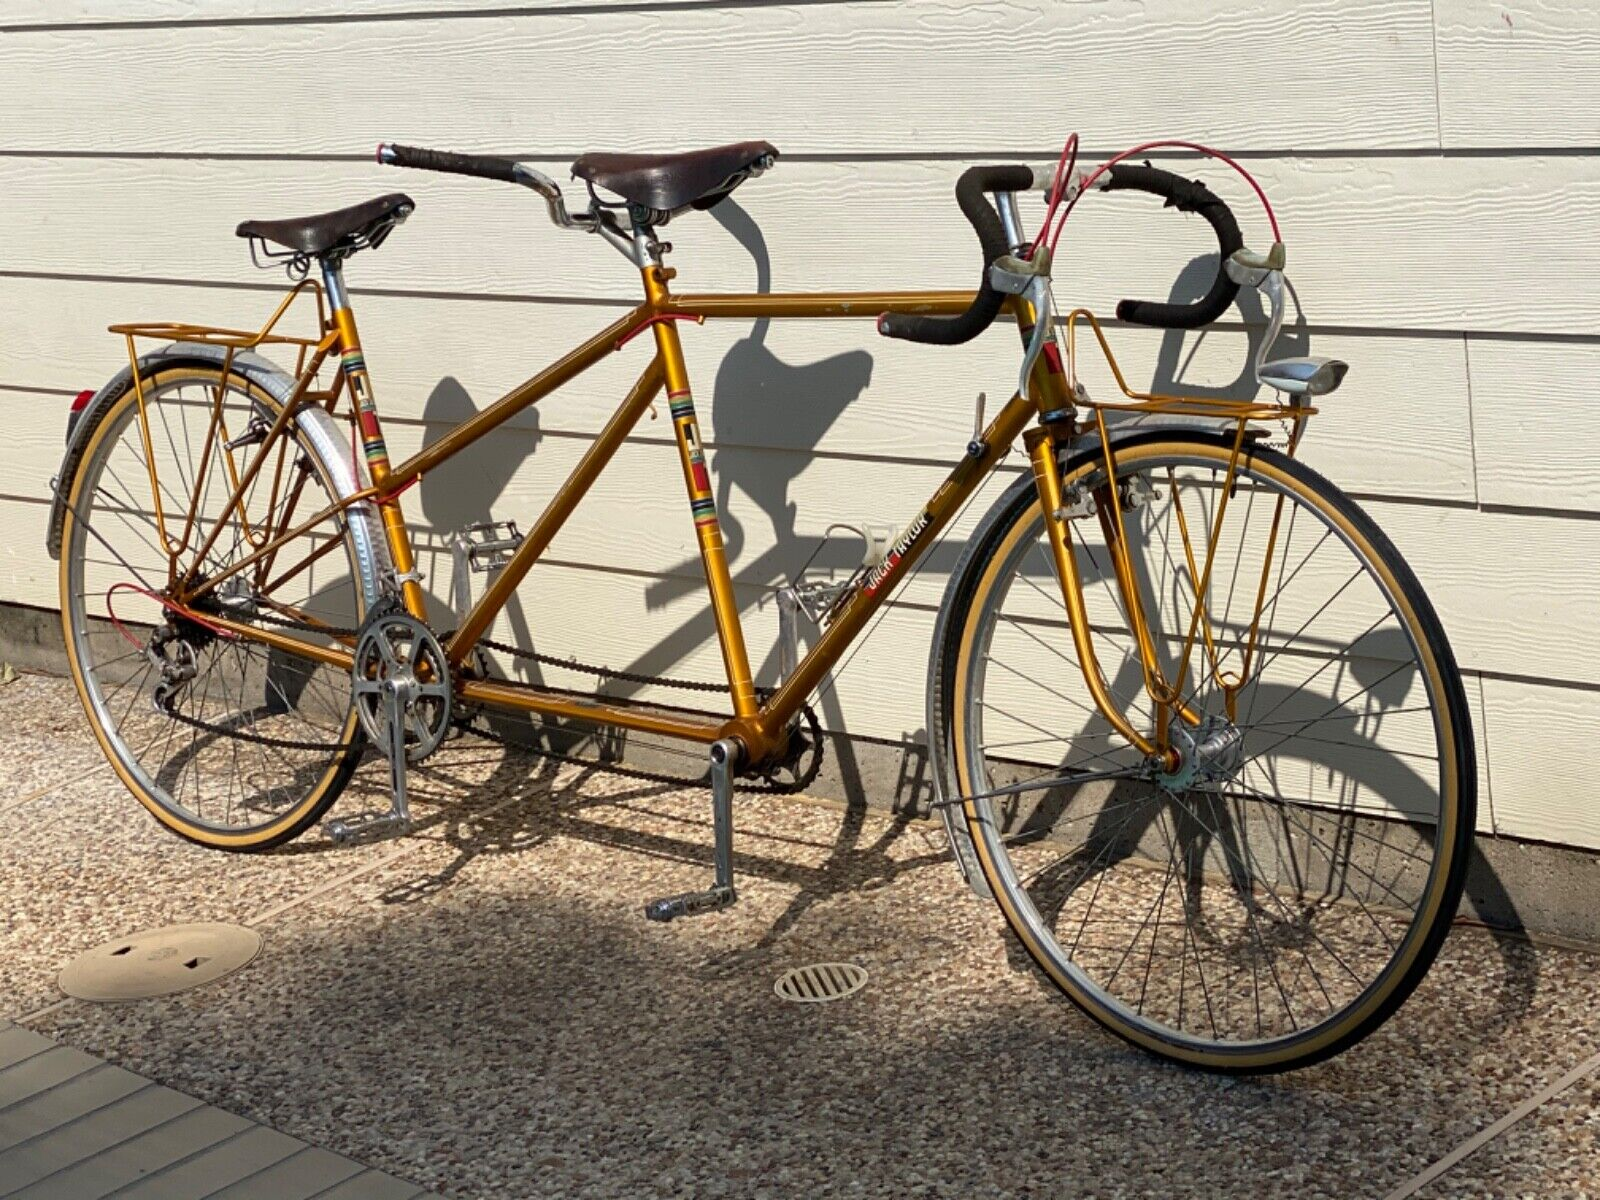 1975 Jack Taylor Bicycle  Tandem Model Tourist 531 Reynolds Butted Tubes SN 6891 (2400 USD)